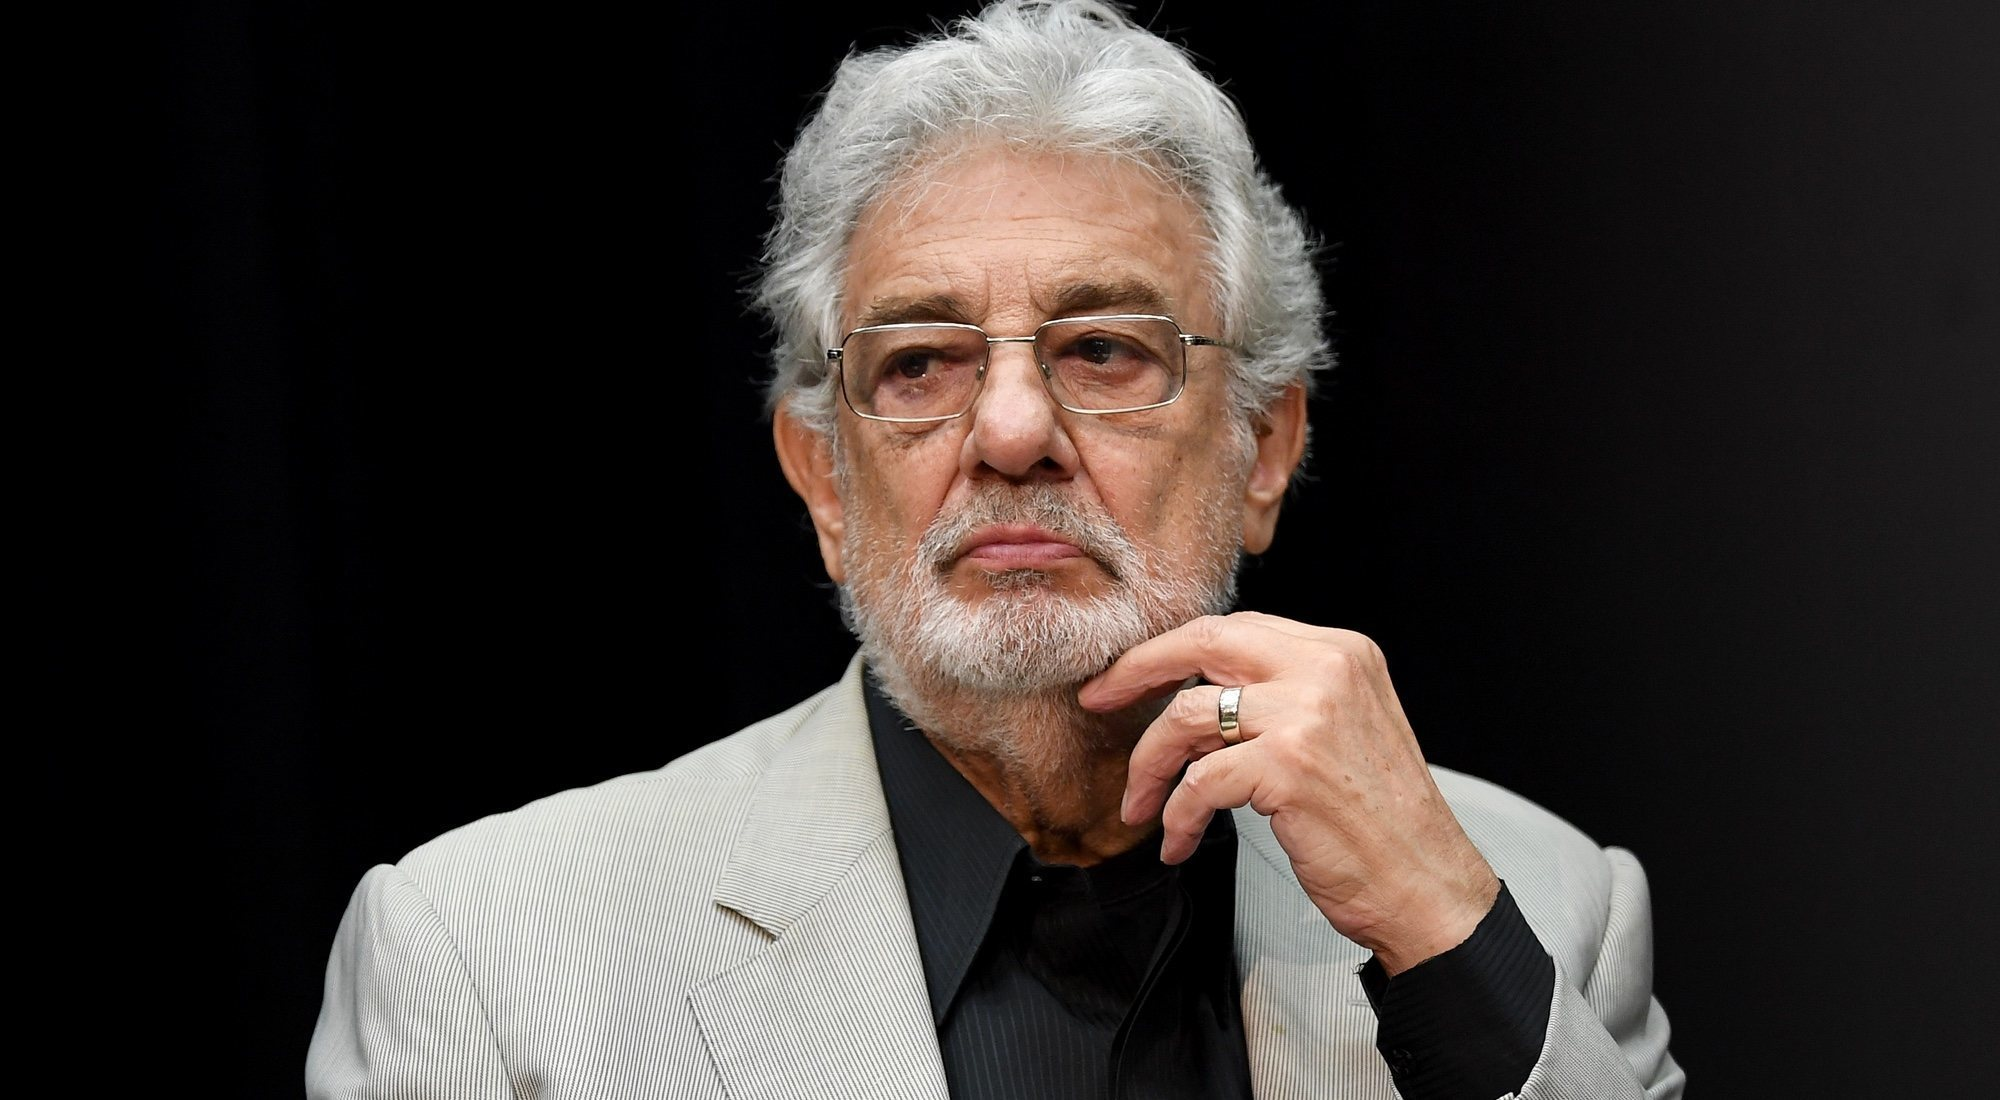 Plácido Domingo es acusado de acoso sexual